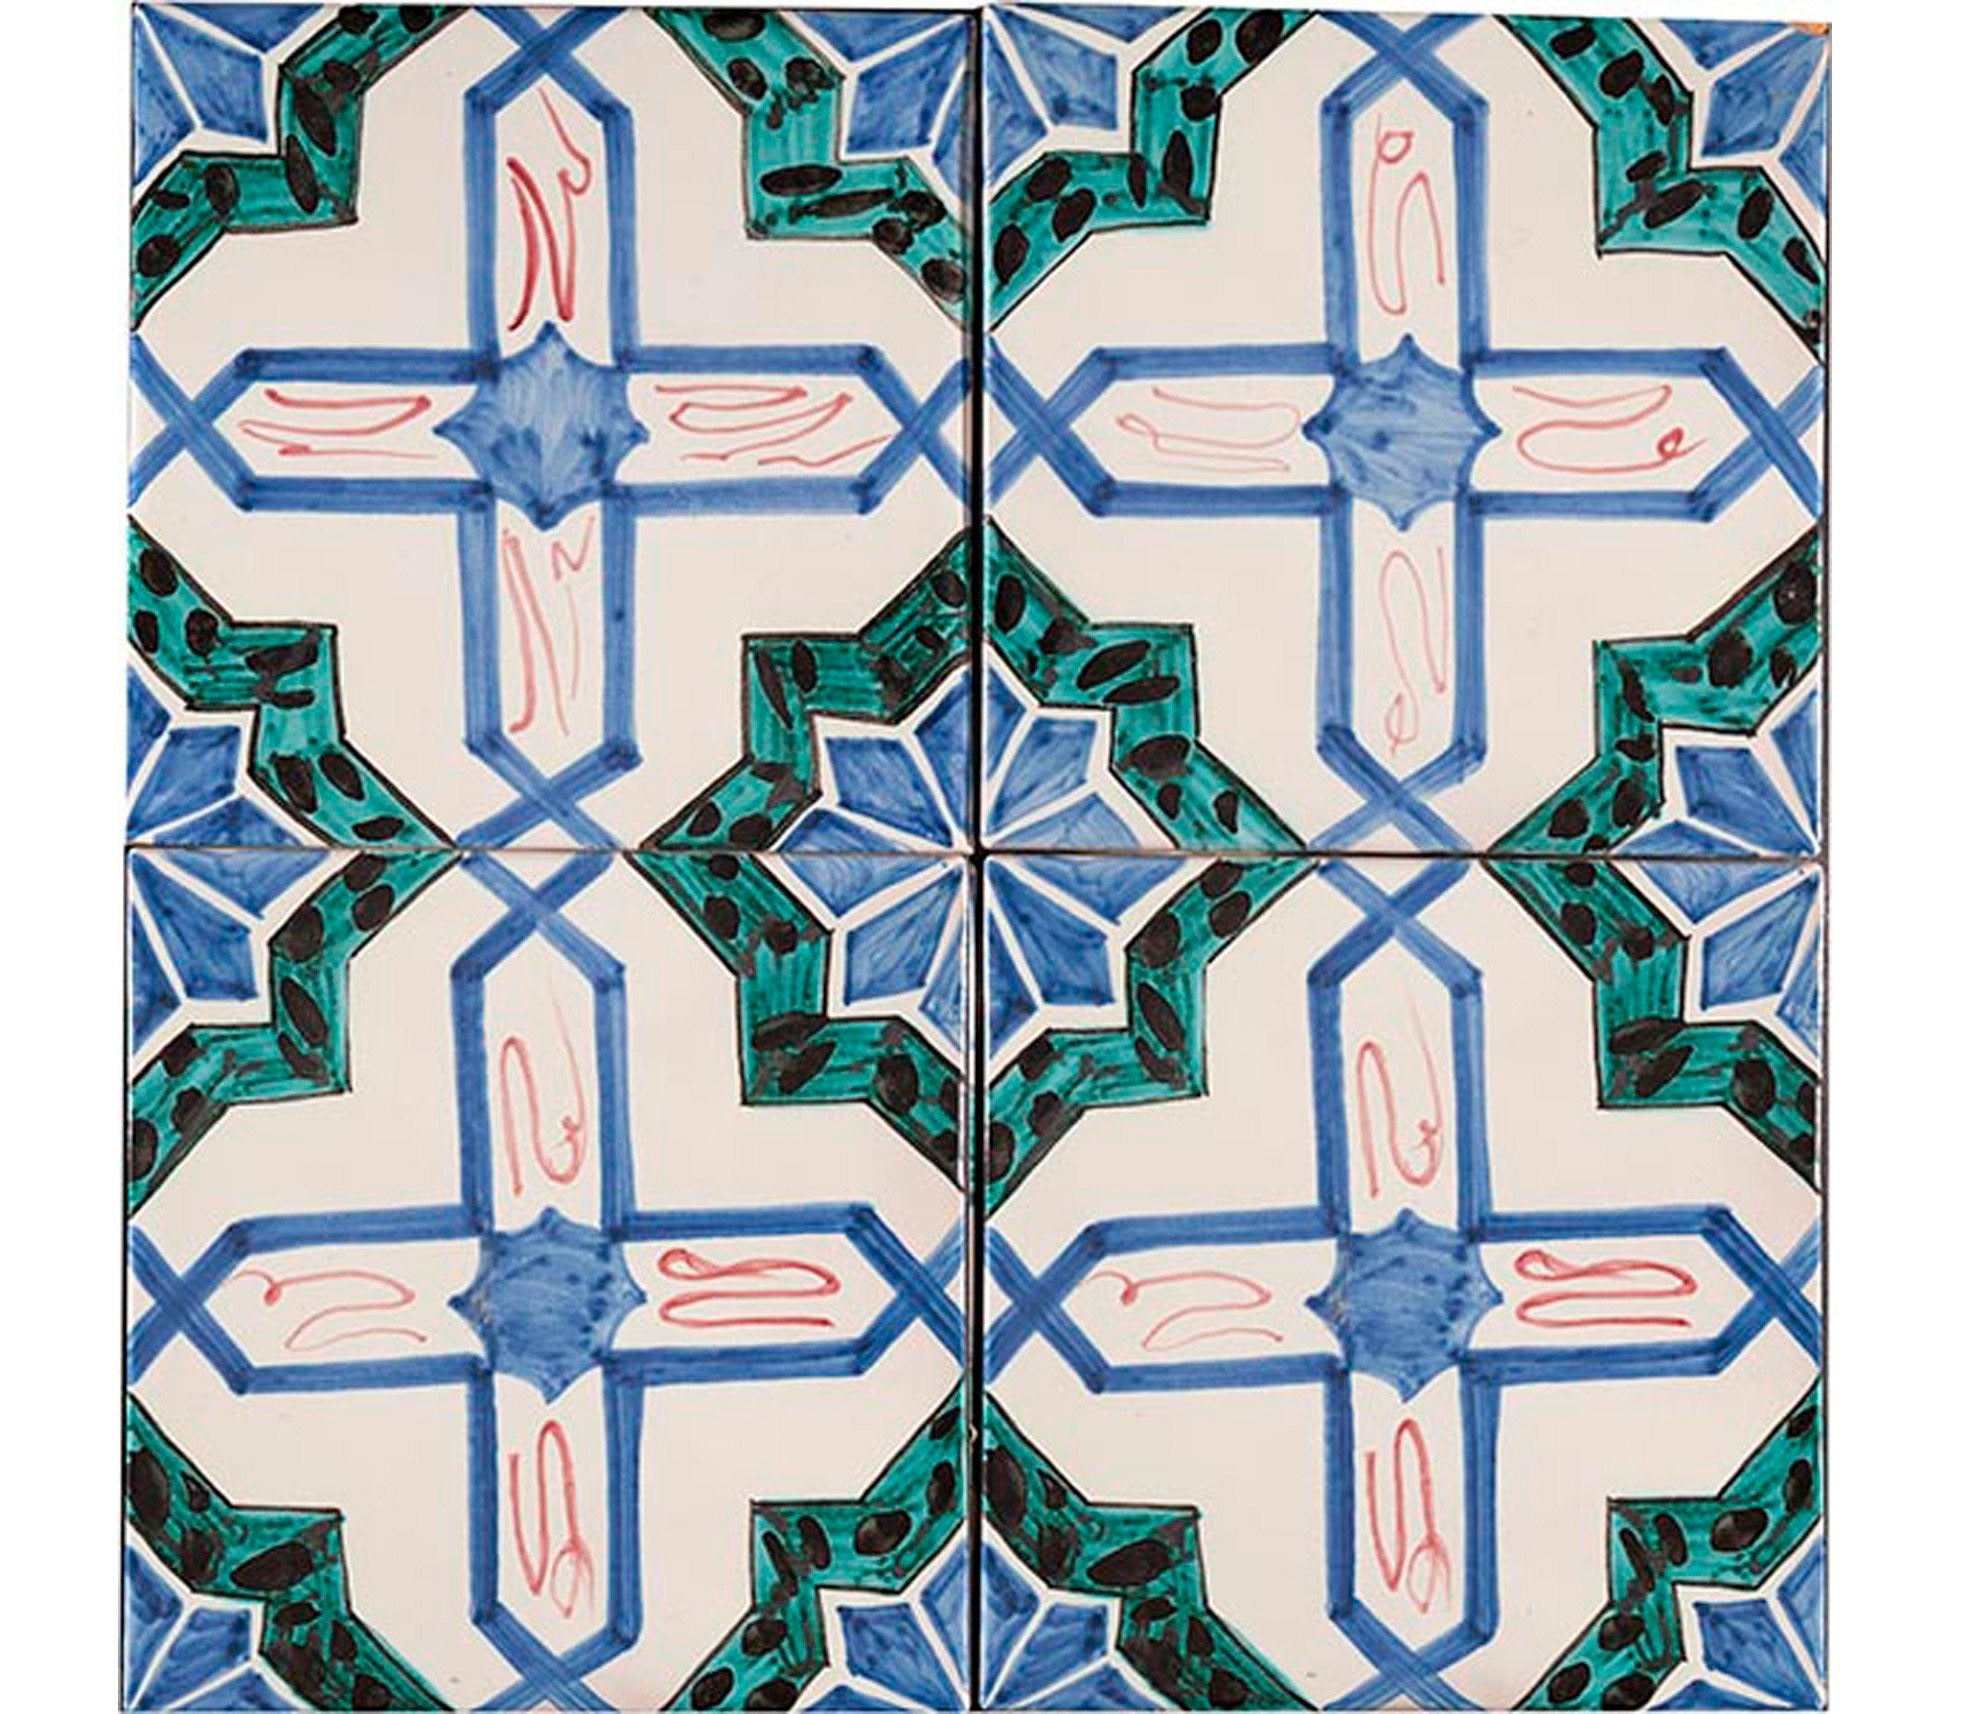 Series S Handpainted Tiles Product Image 53